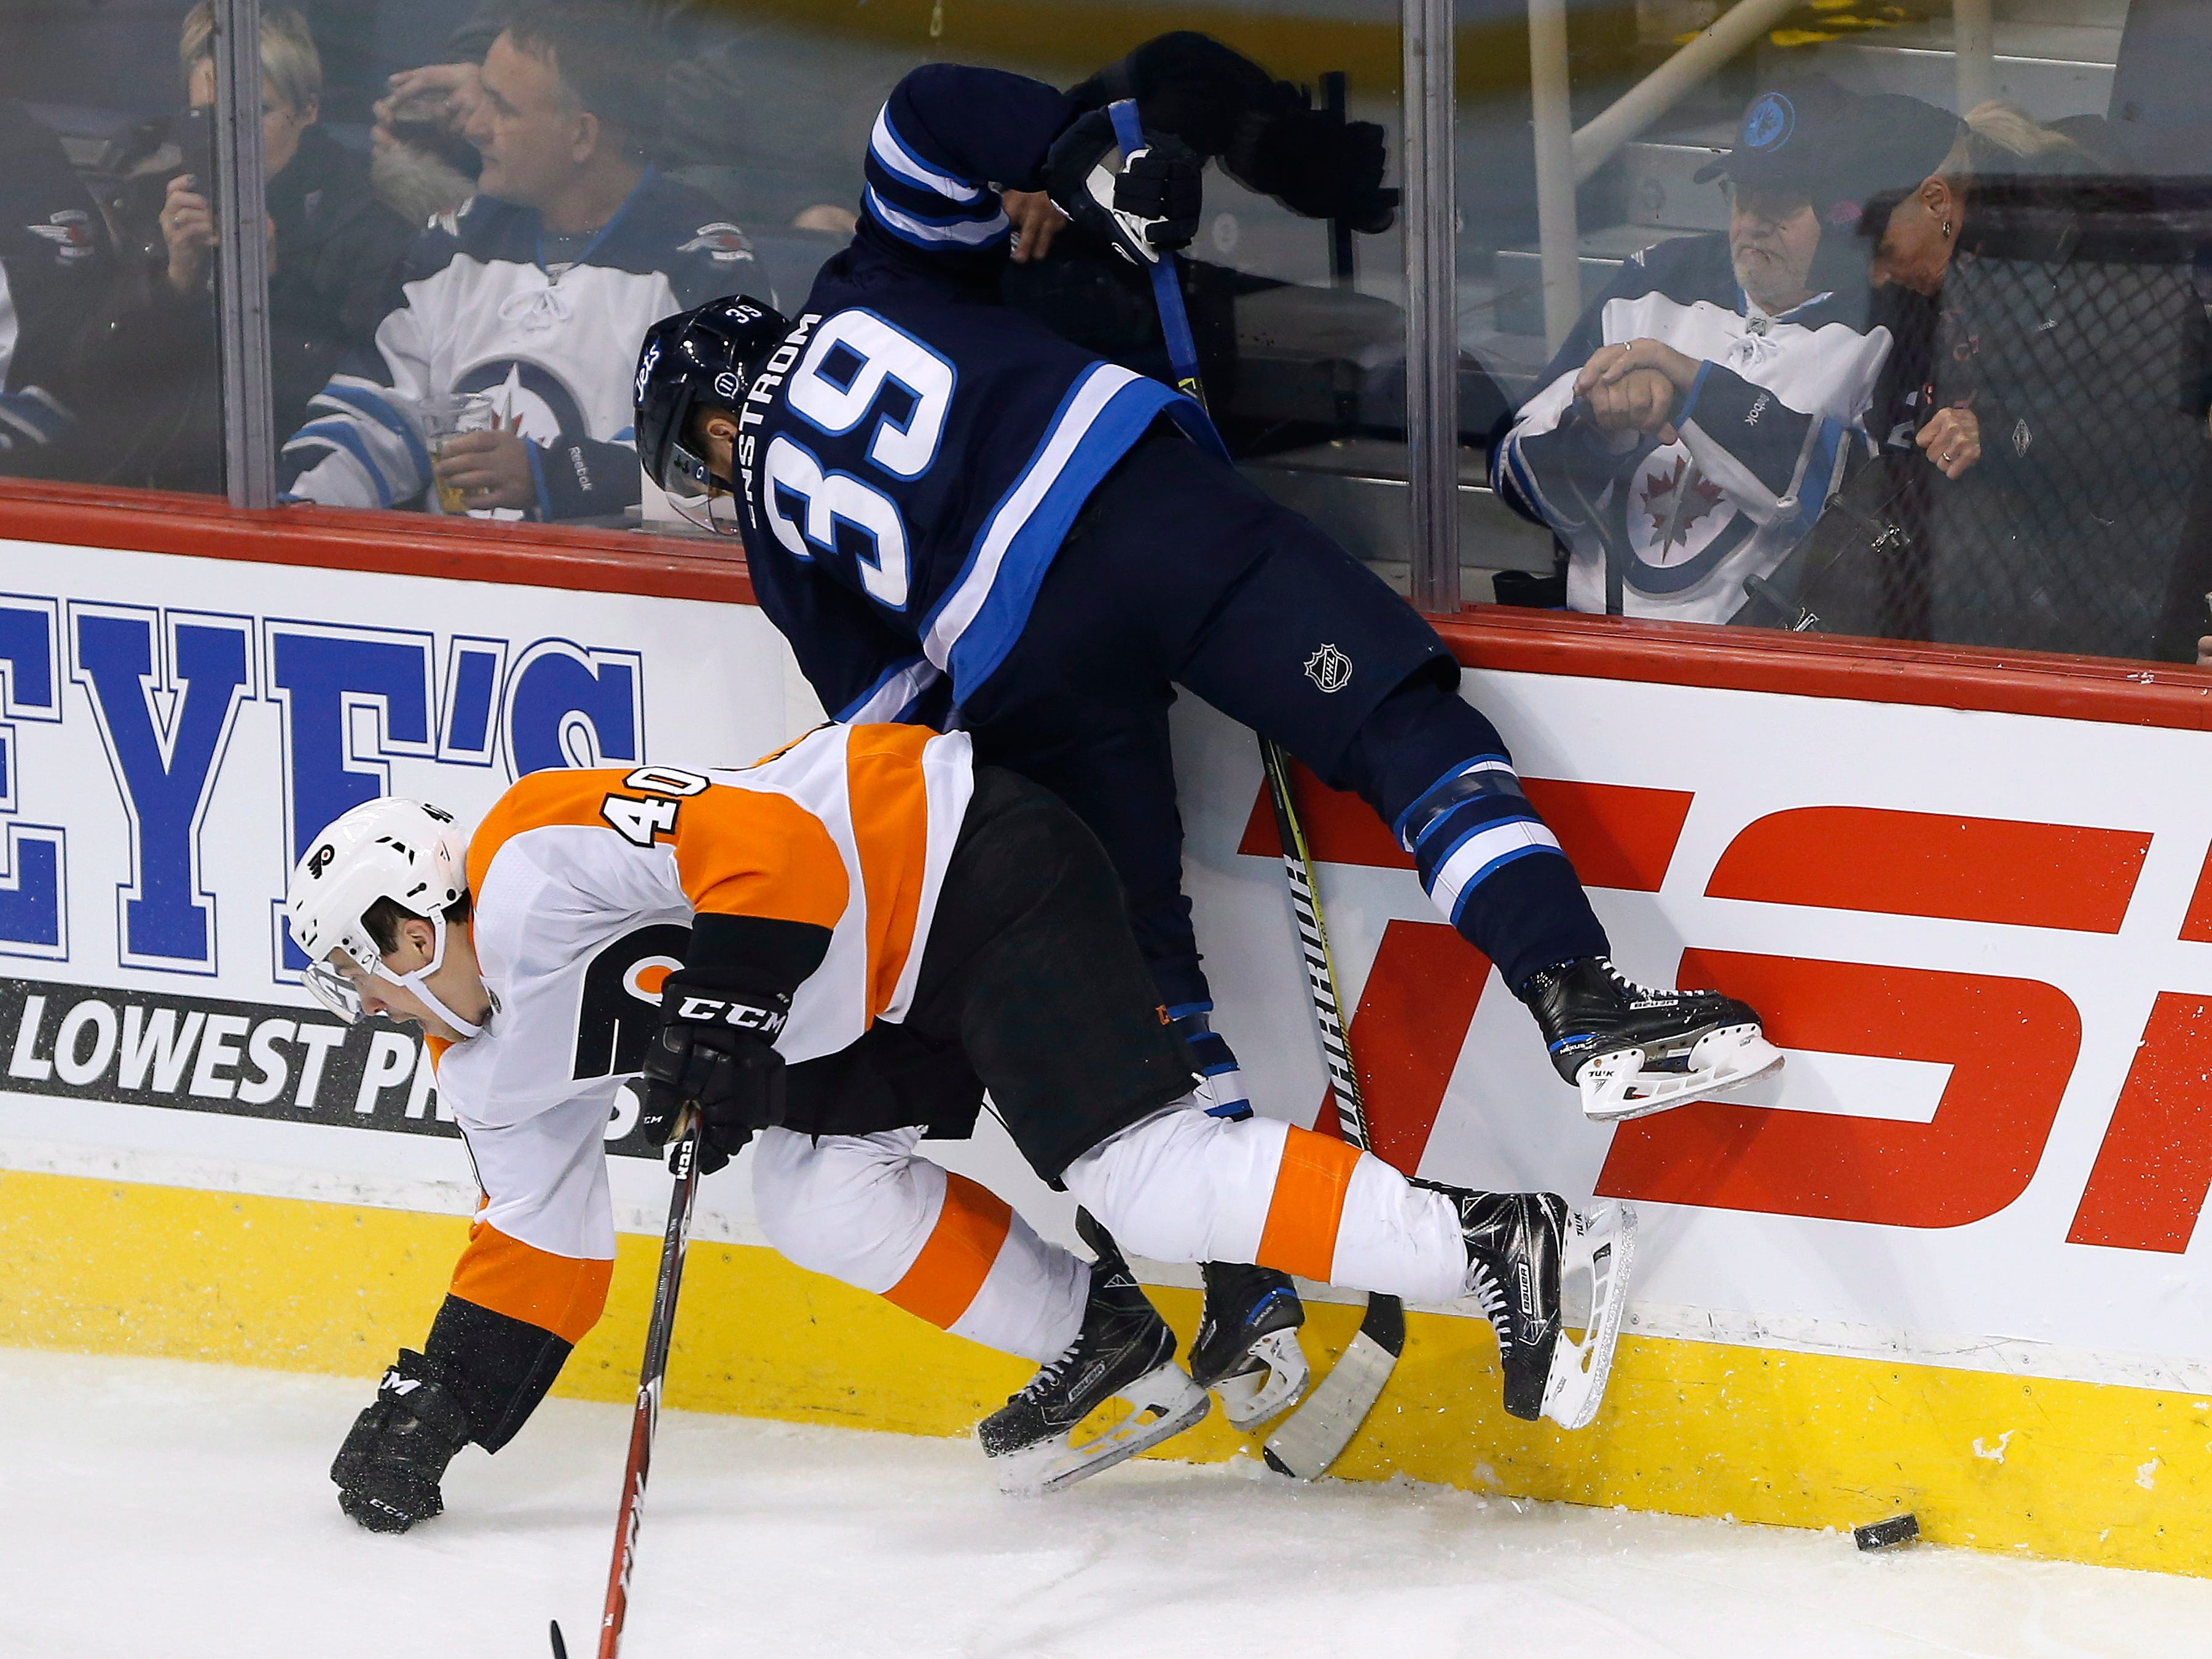 Jets defenseman Enstrom out 8 weeks with a lower-body injury